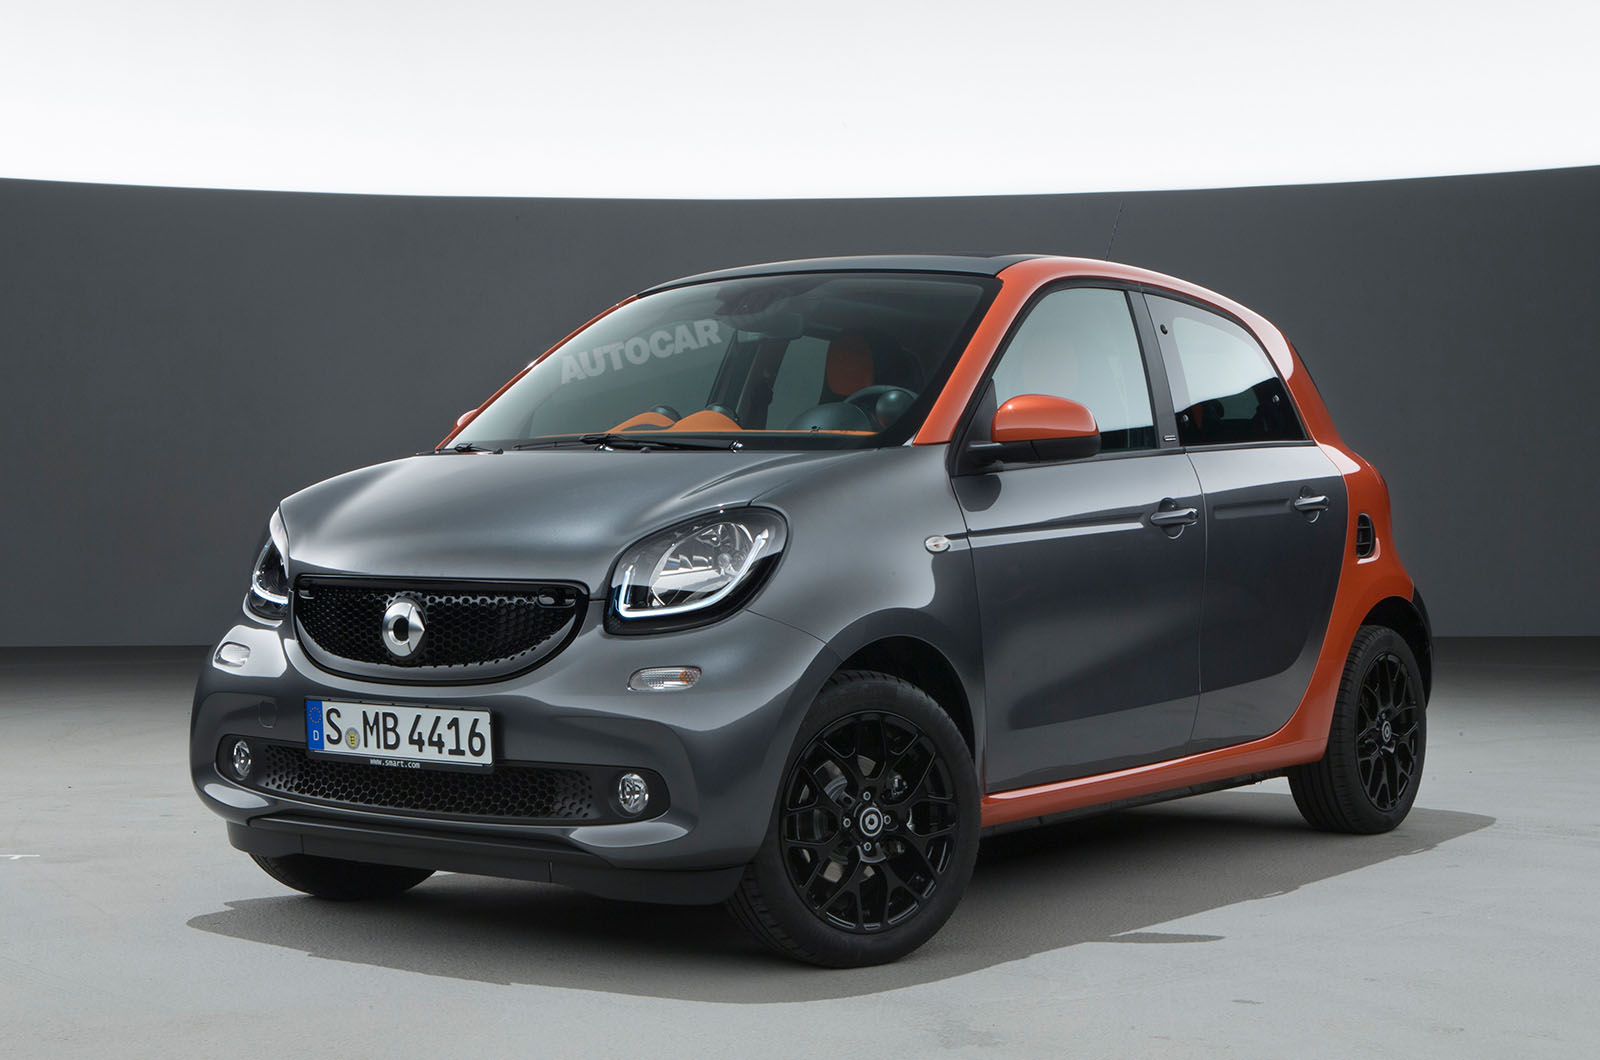 2014 - [Smart] Forfour [W453] - Page 12 Smart-fortwo-forfour-z-t84o32